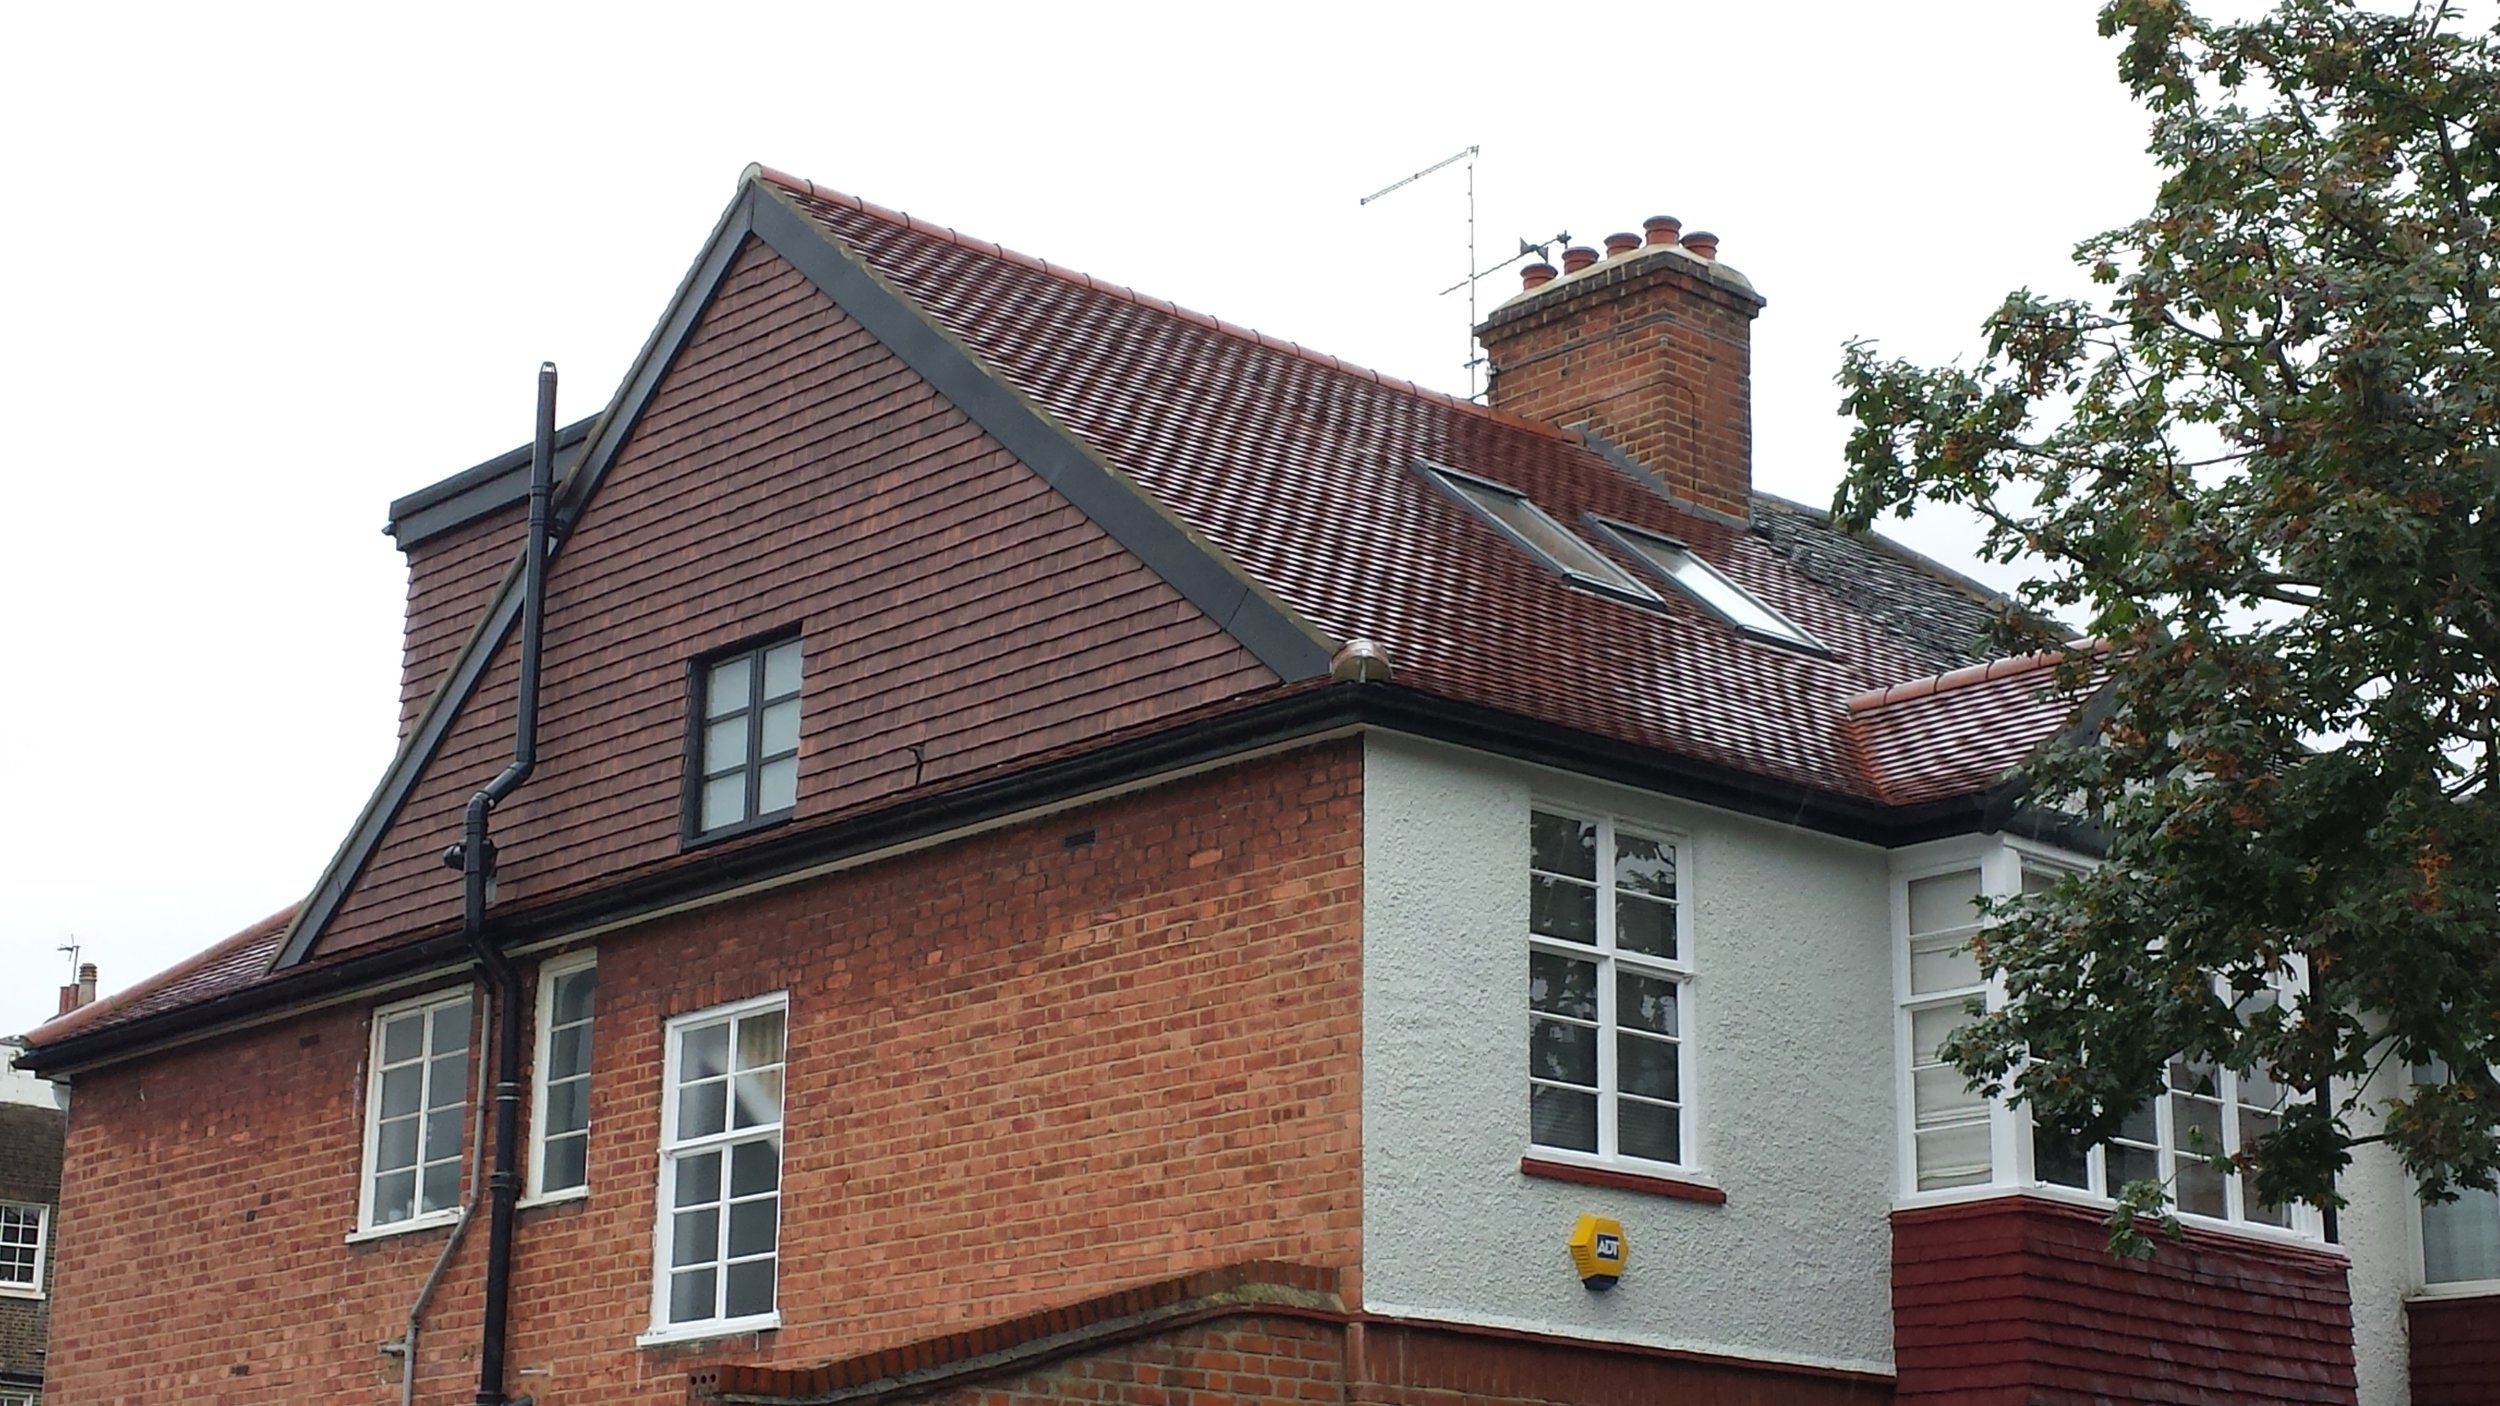 Hip to Gable in Clay roof tiles.jpg